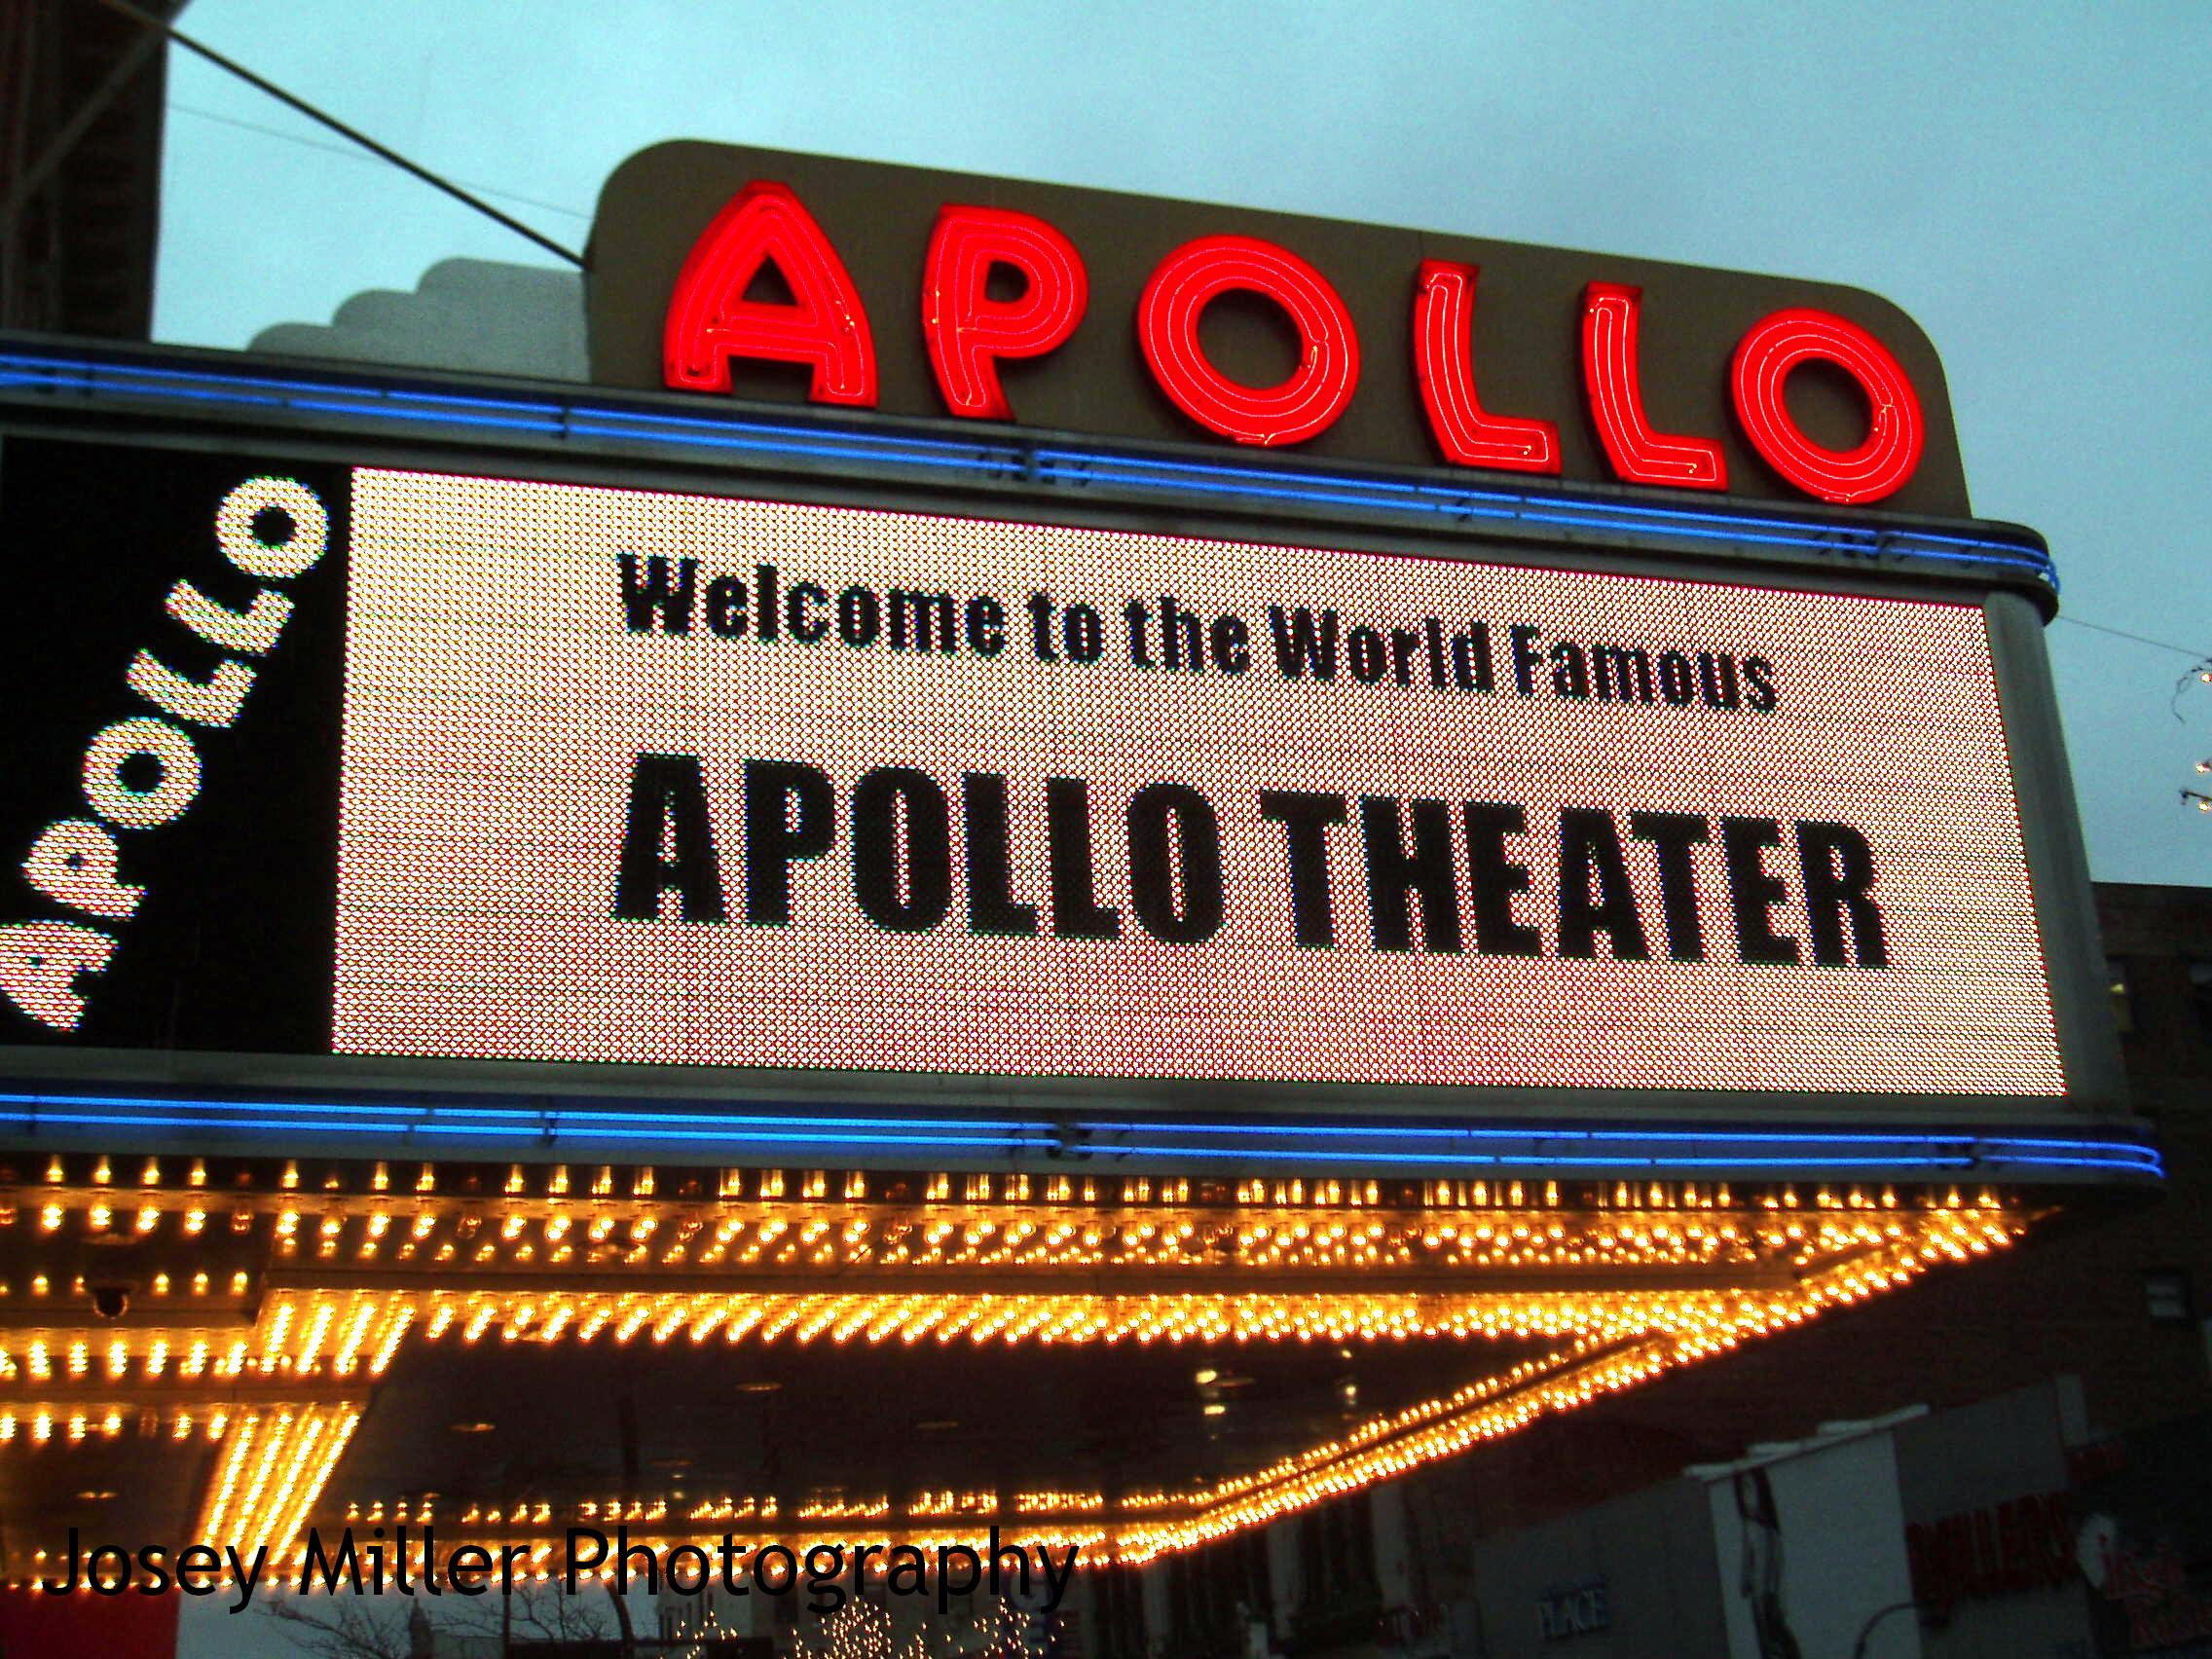 apollo theatre Apollo theatre: just absolutely amazing - see 512 traveler reviews, 87 candid photos, and great deals for london, uk, at tripadvisor.